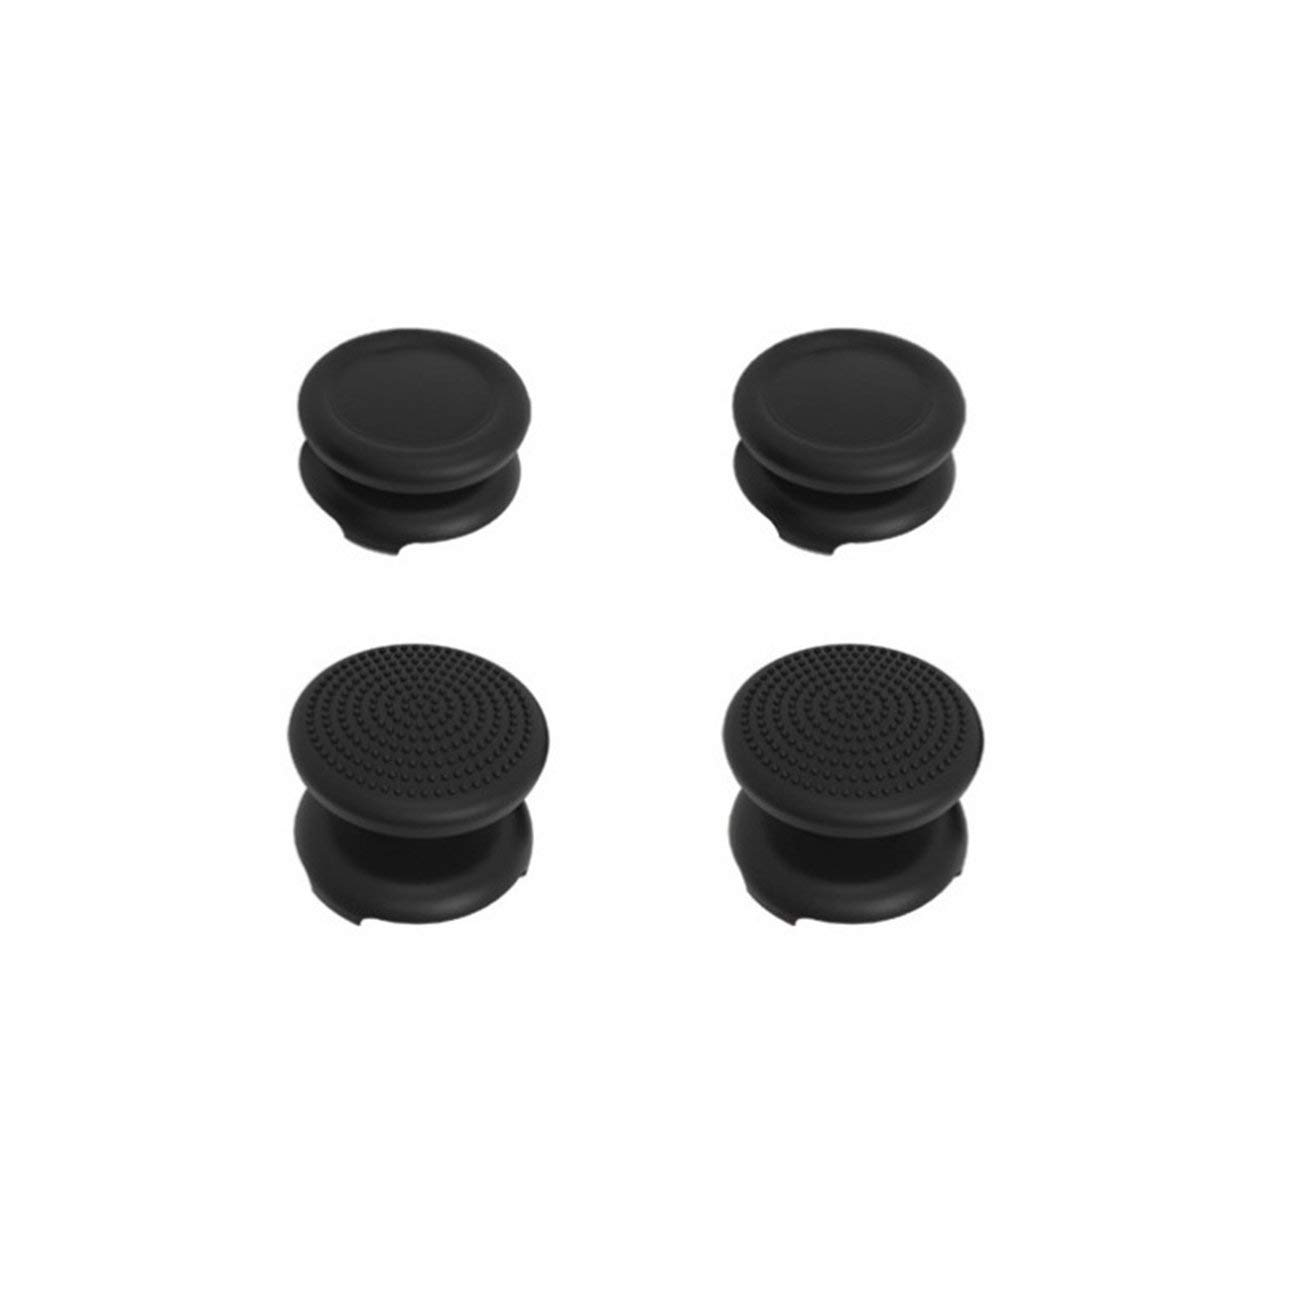 Liobaba Durable Heighten Rocker Cap for PS3 Handle Controller Cap for PS4 ONE Rocker Silicone Skid Cover Protective Case